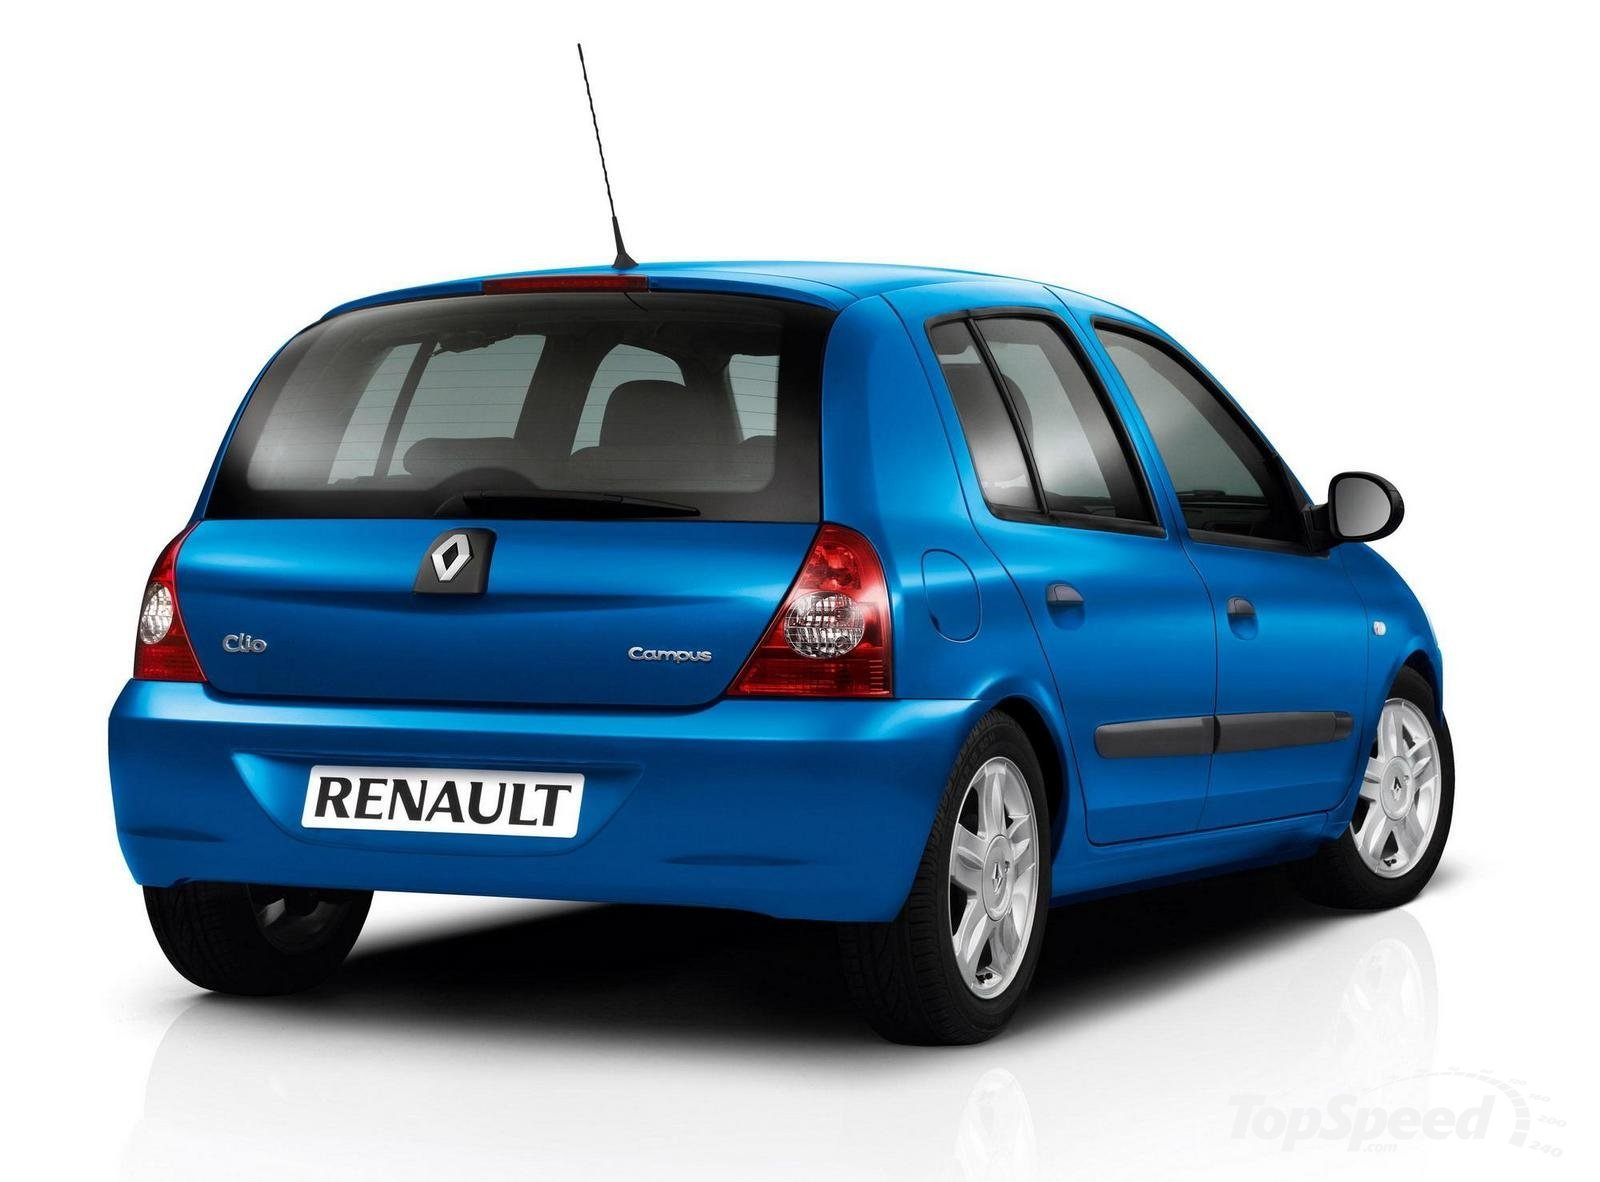 2008 renault clio ii campus b c b0 pictures information and specs auto. Black Bedroom Furniture Sets. Home Design Ideas